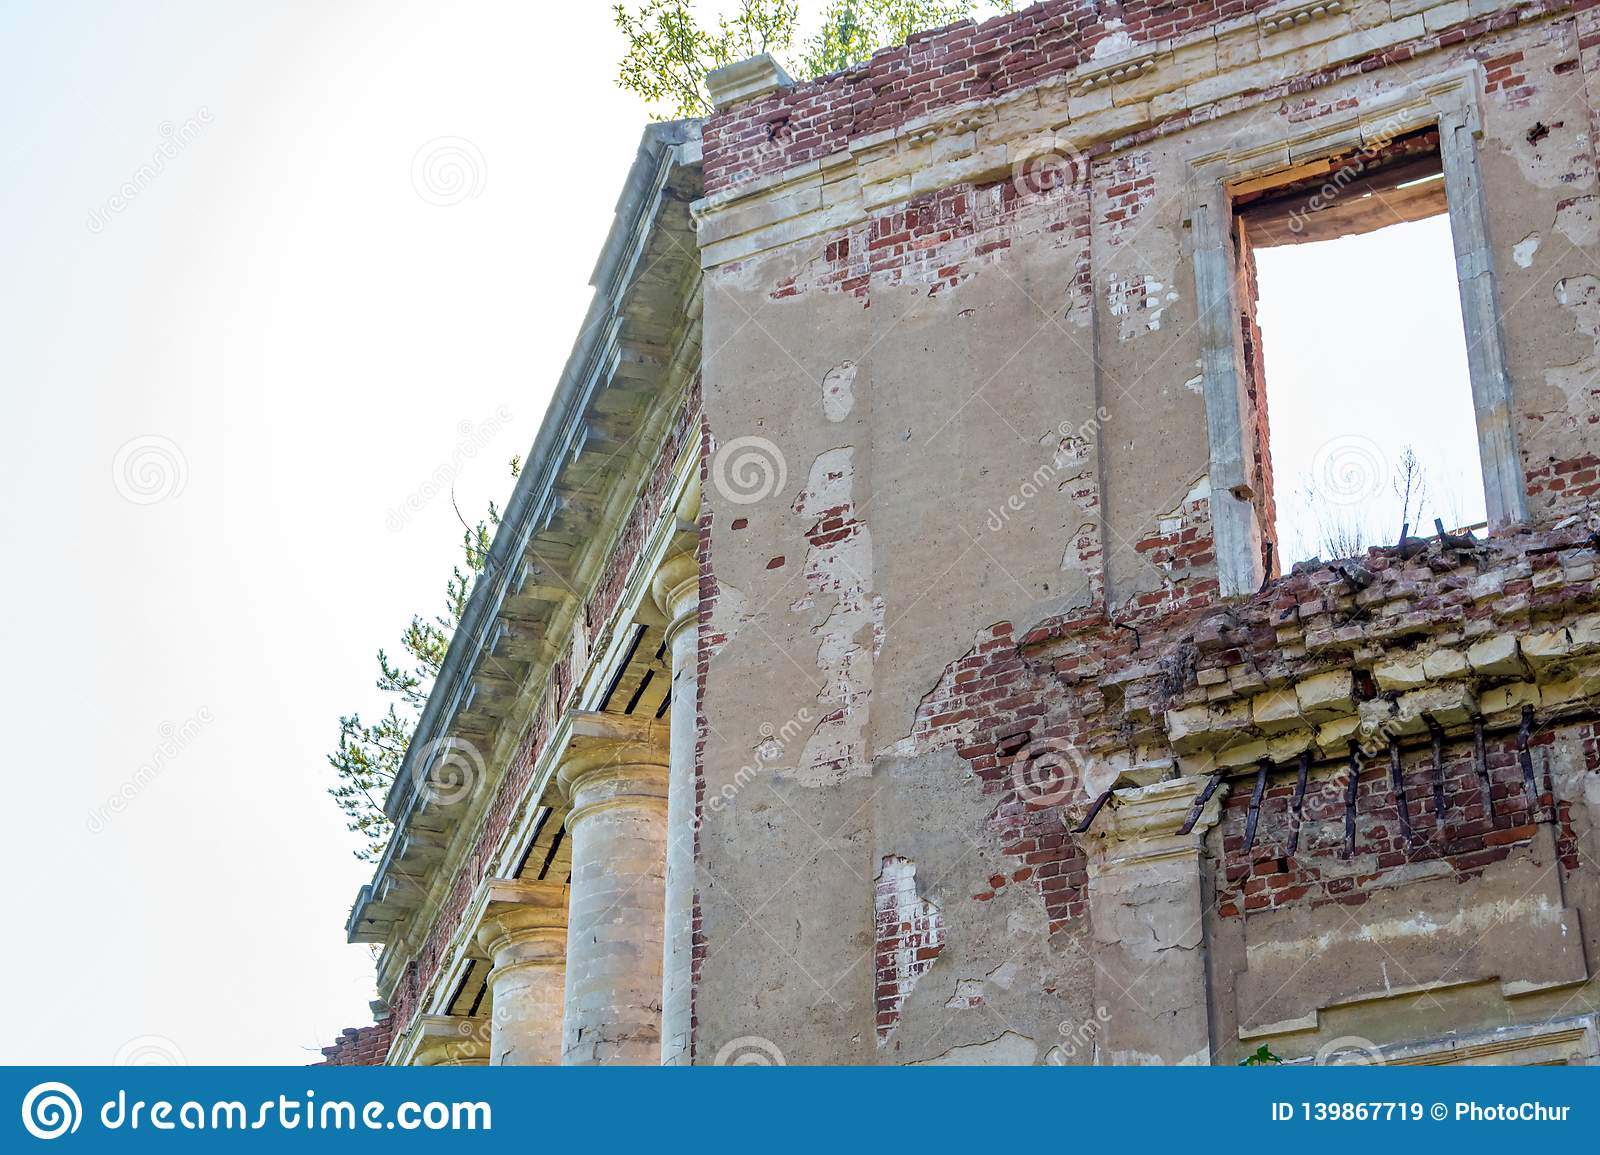 Petrovskoe-Alabino Estate - the ruins of an abandoned farmstead at the end of the 18th century